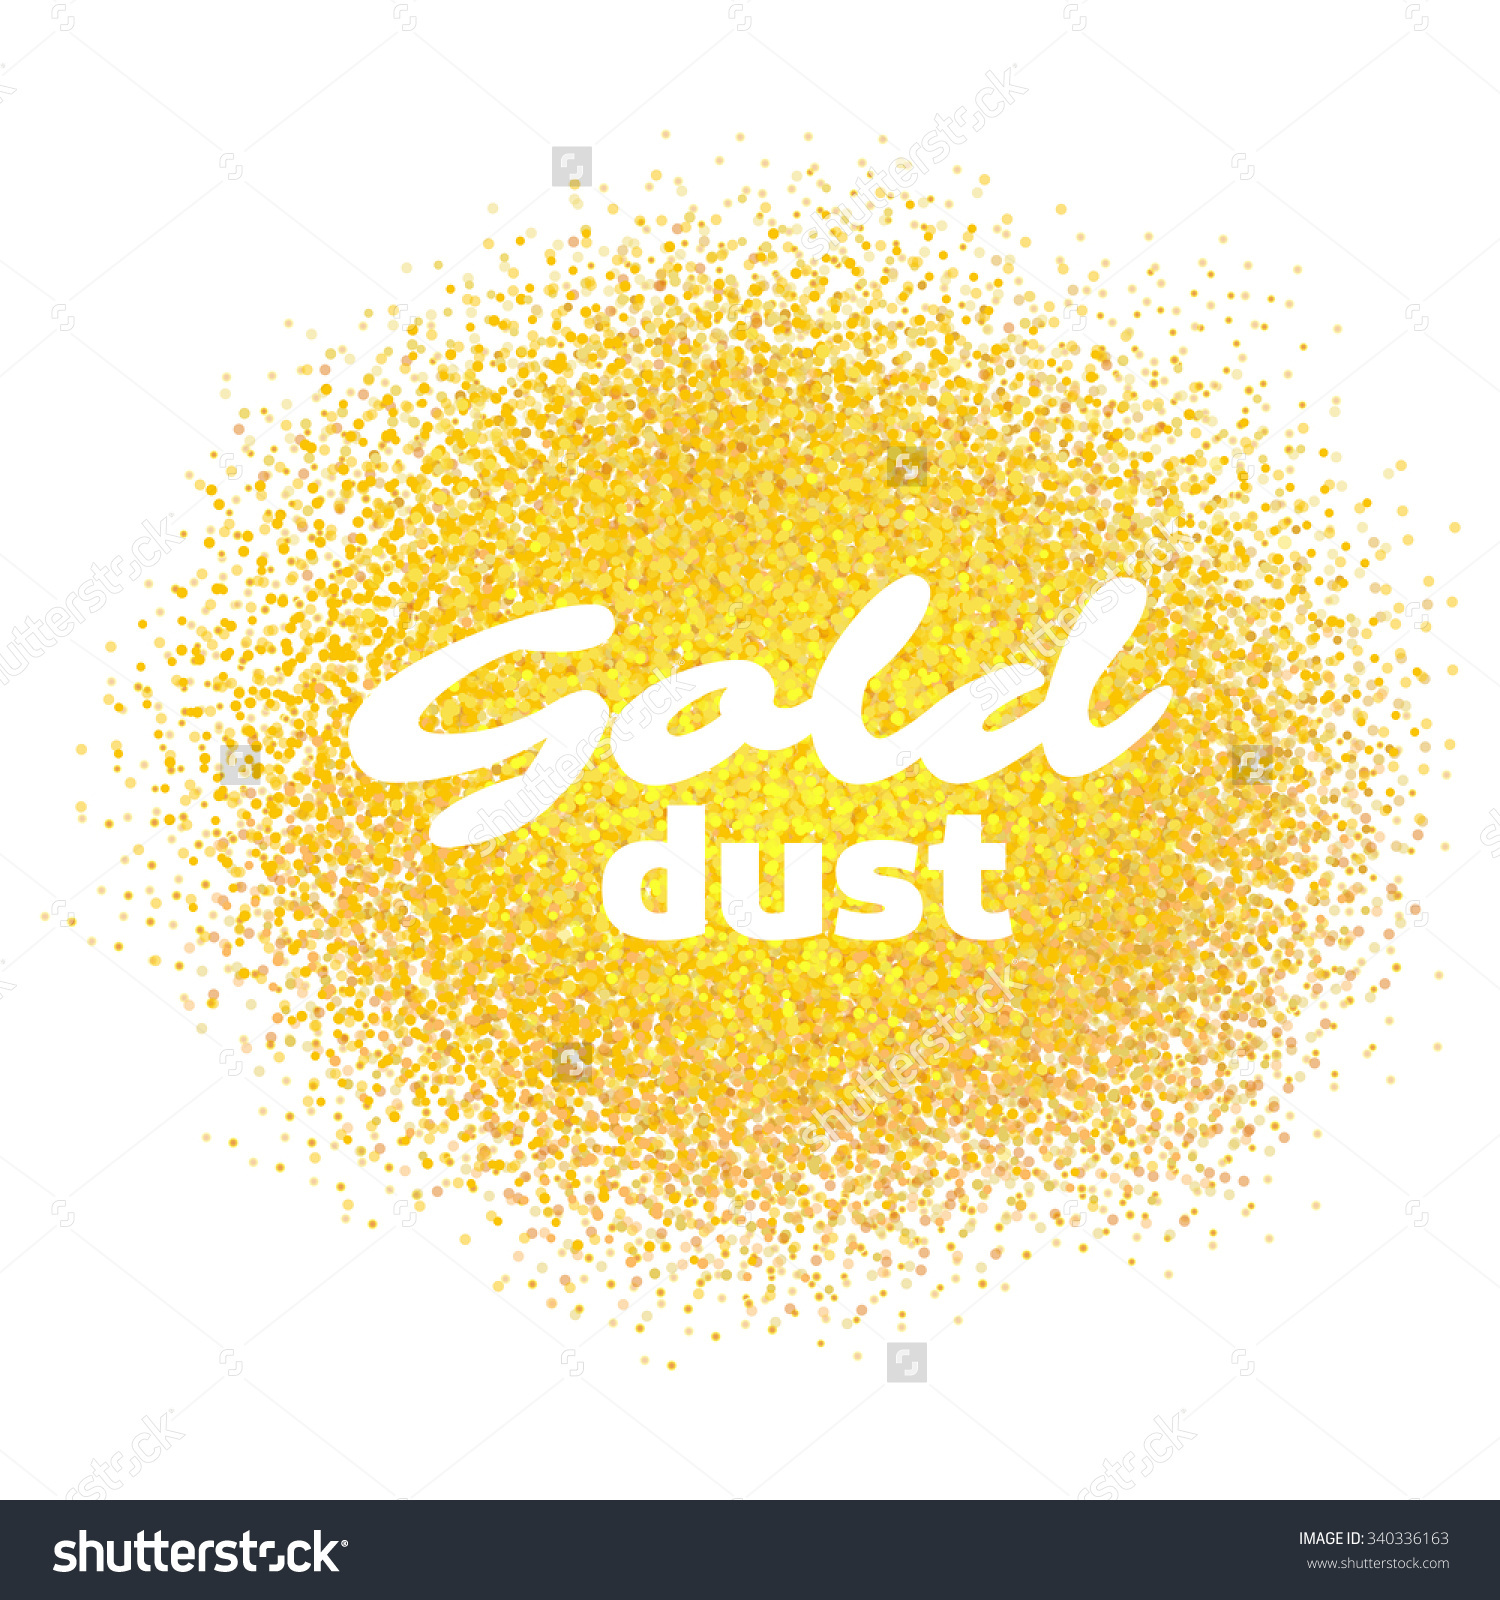 Gold Dust Gold Sand Gold Sparkles Stock Vector 340336163.